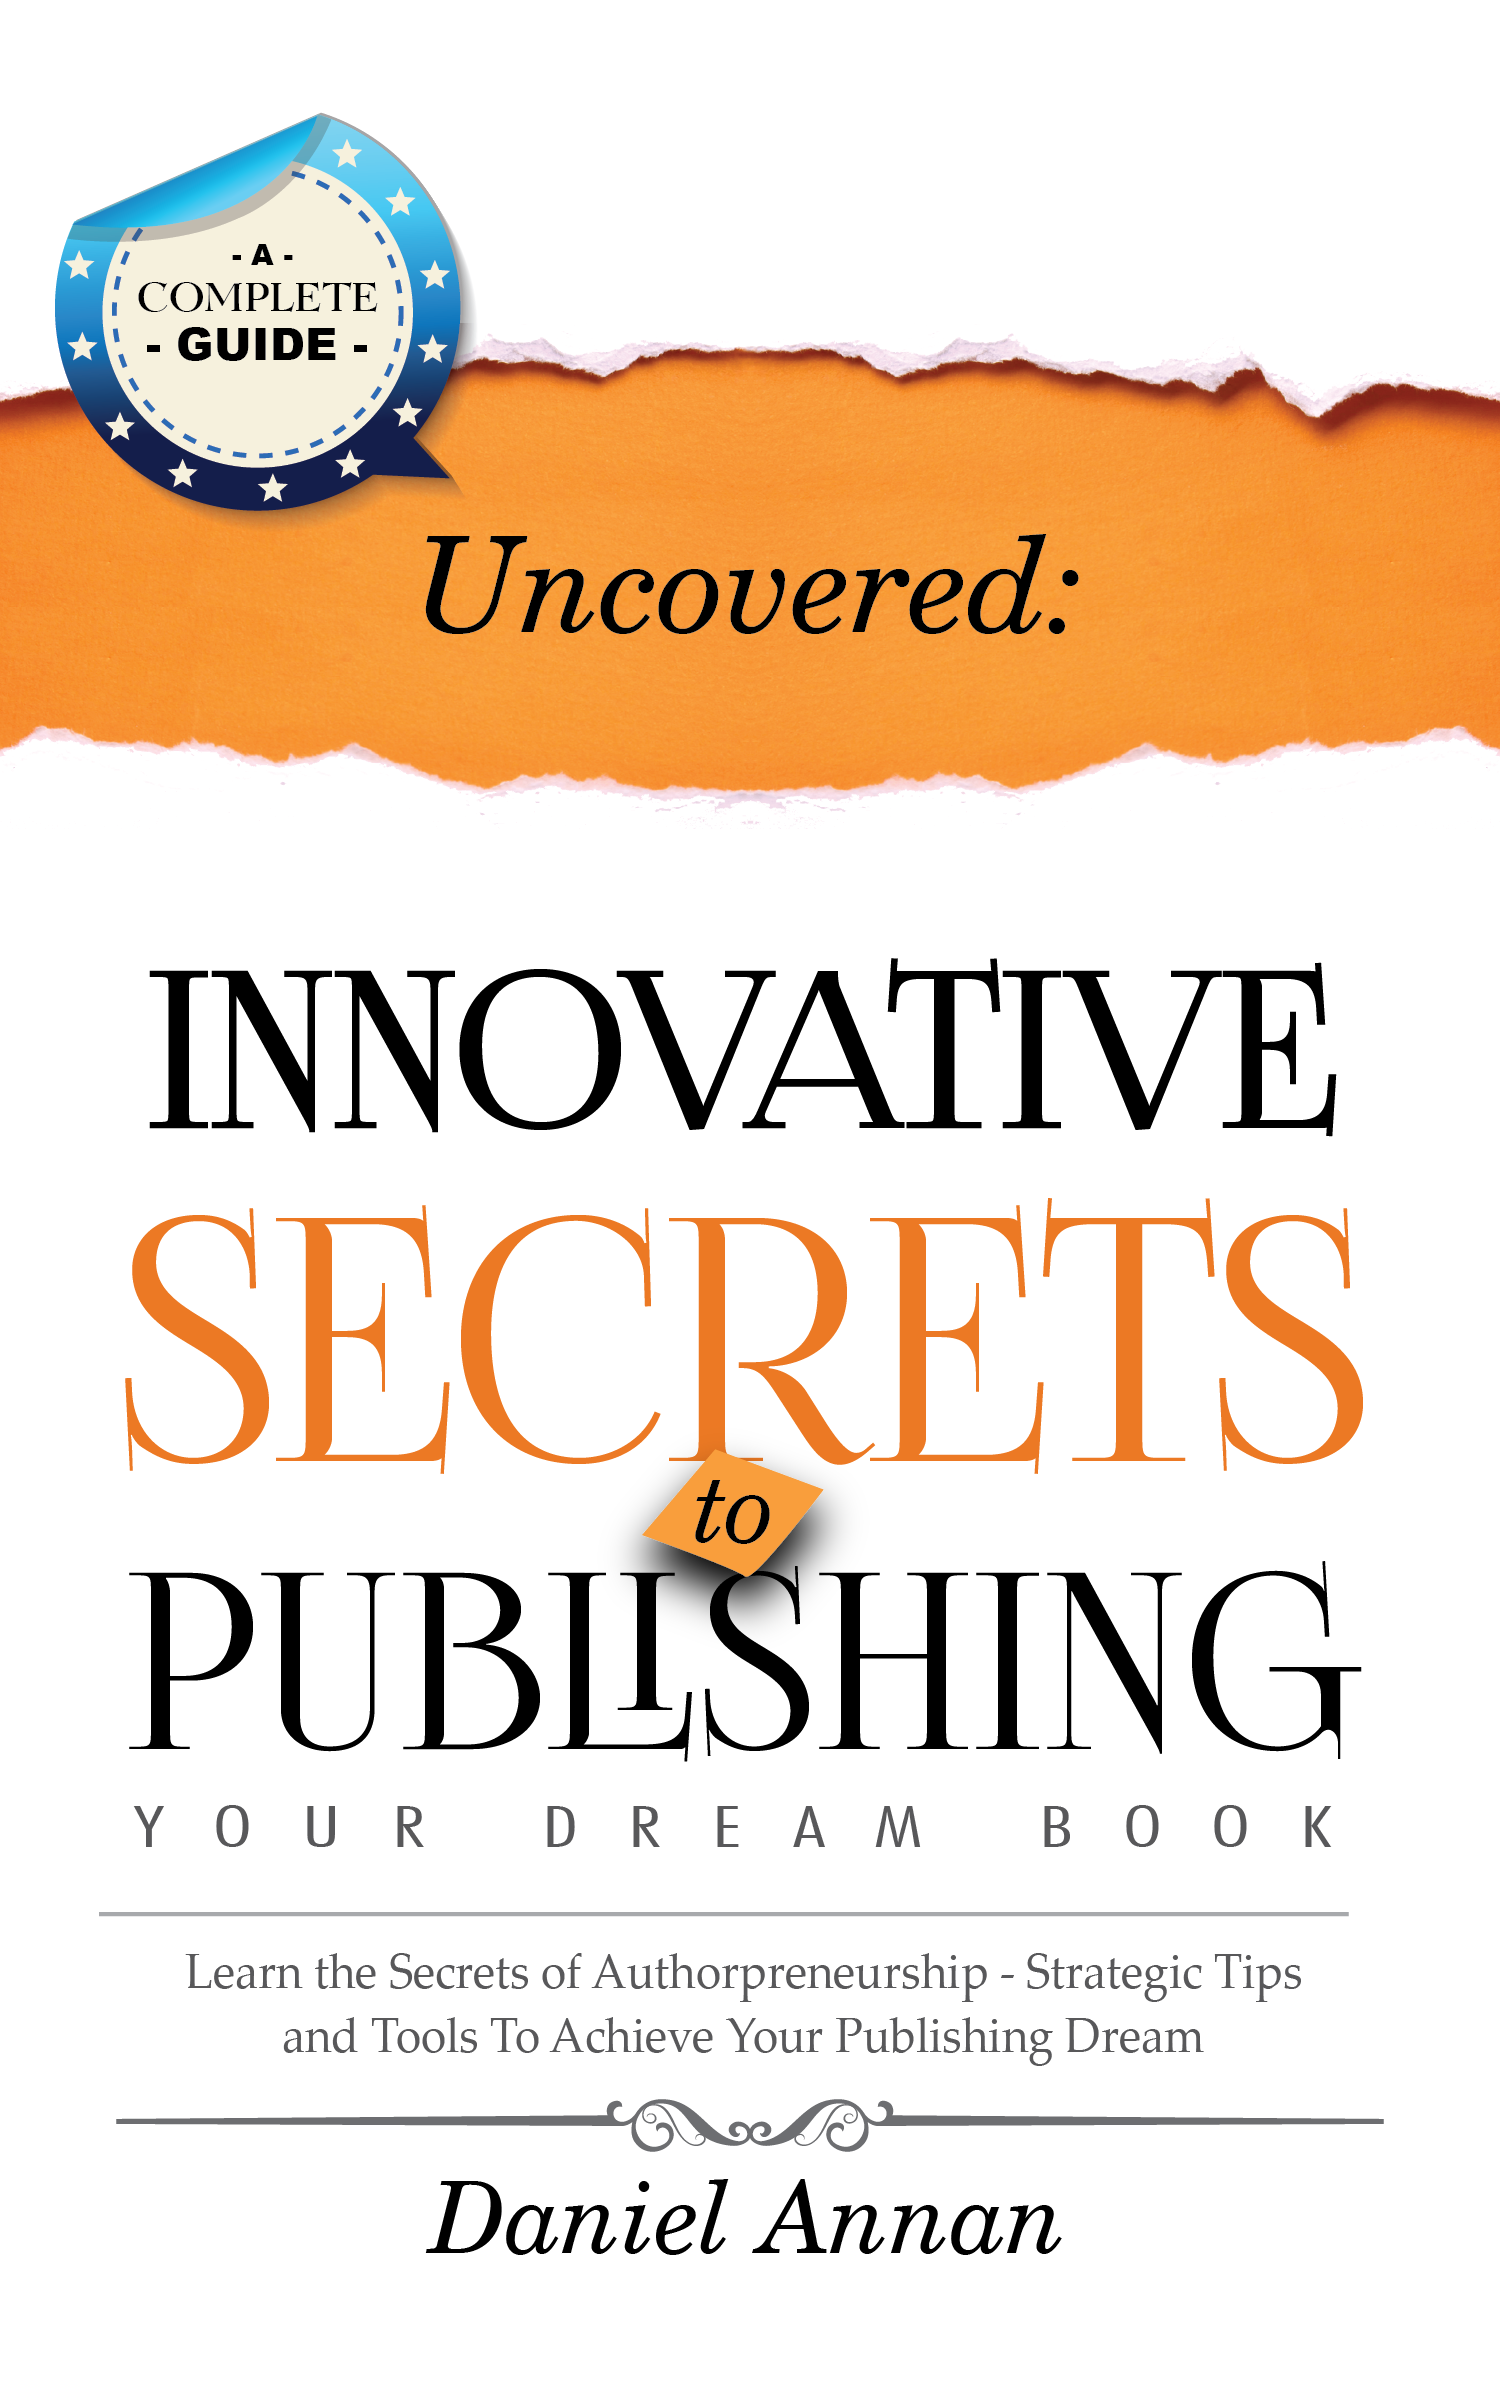 Innovative Secrets to Publishing your dream book